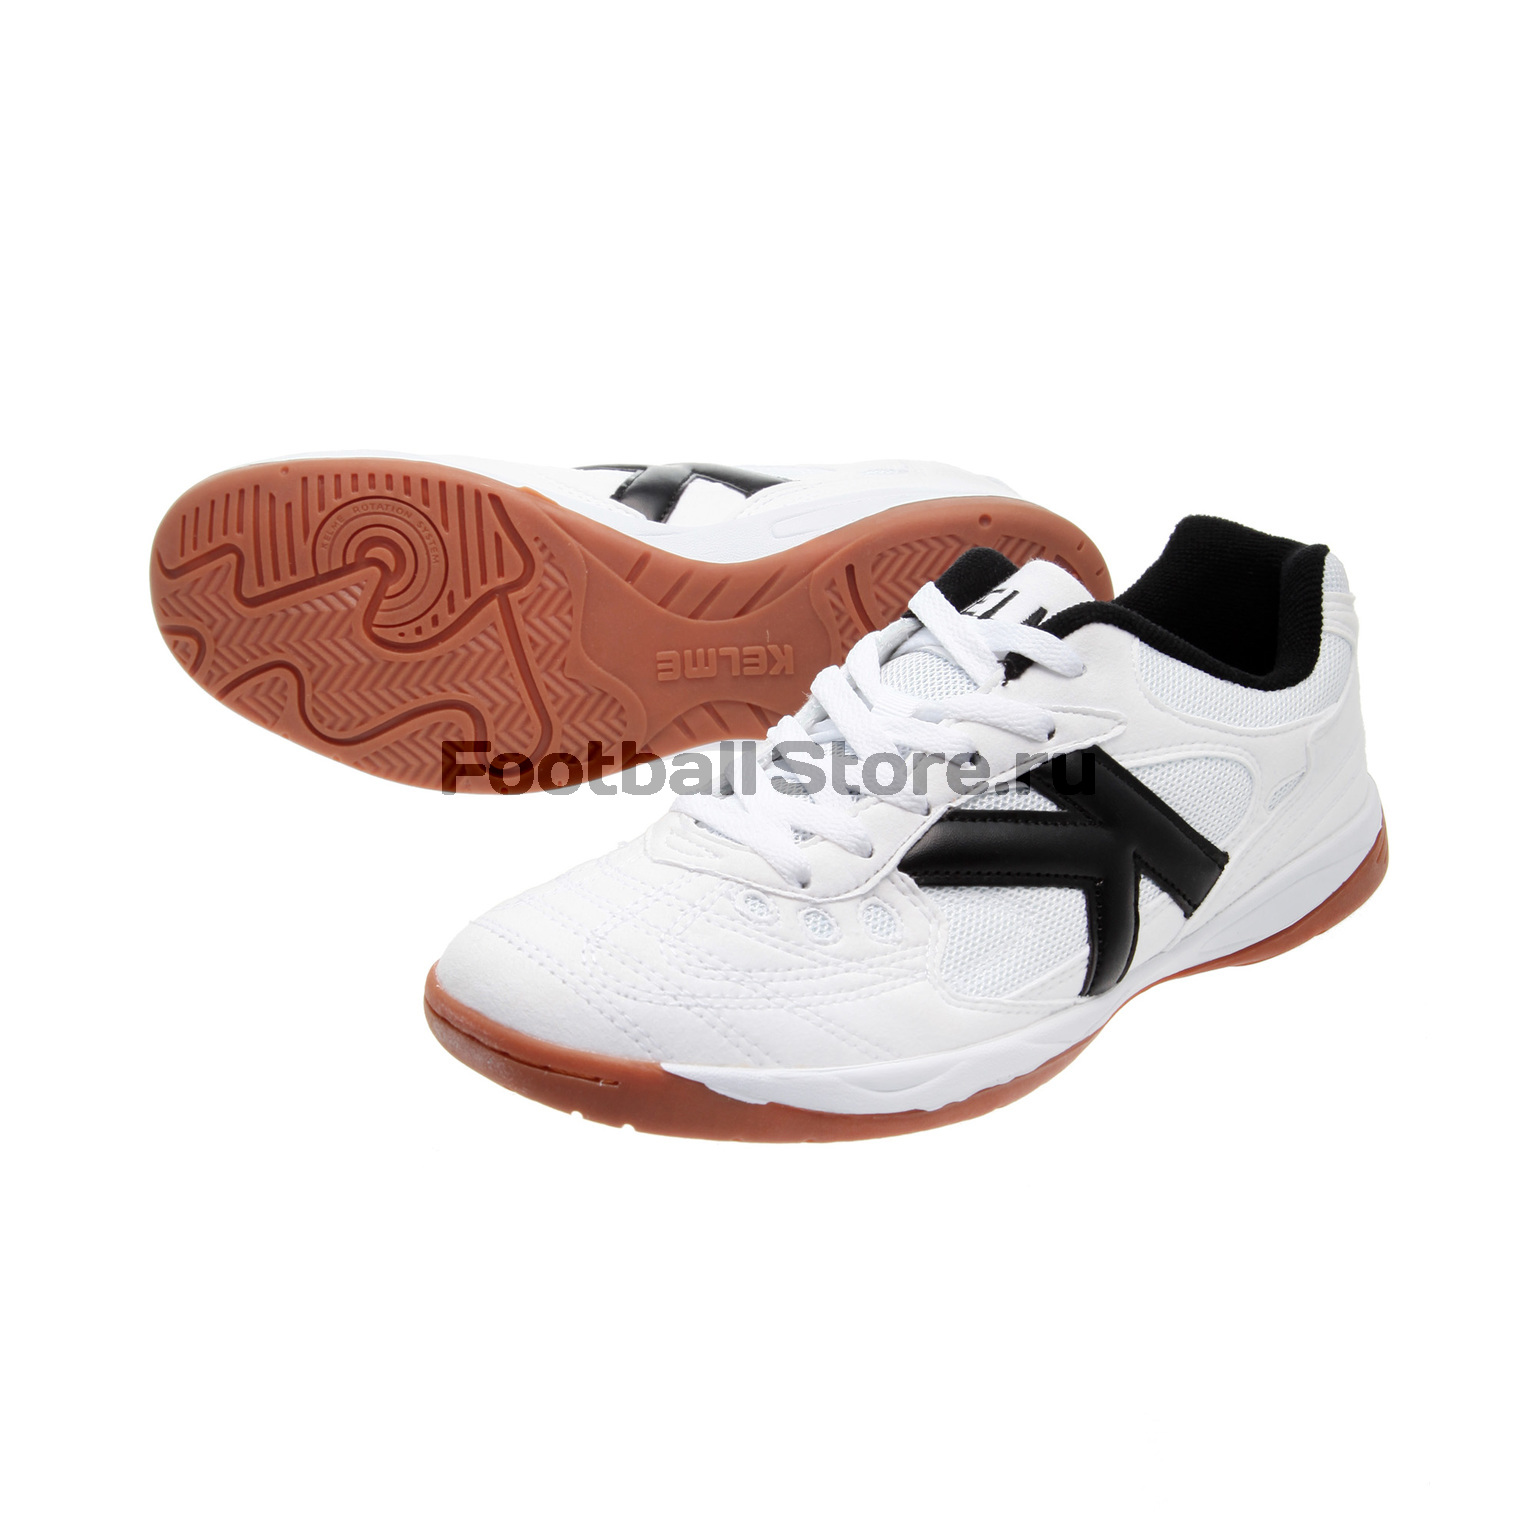 Обувь для зала Kelme Indoor Copa 55257-006 обувь для зала kelme обувь для зала kelme subito 5 0 55803 026